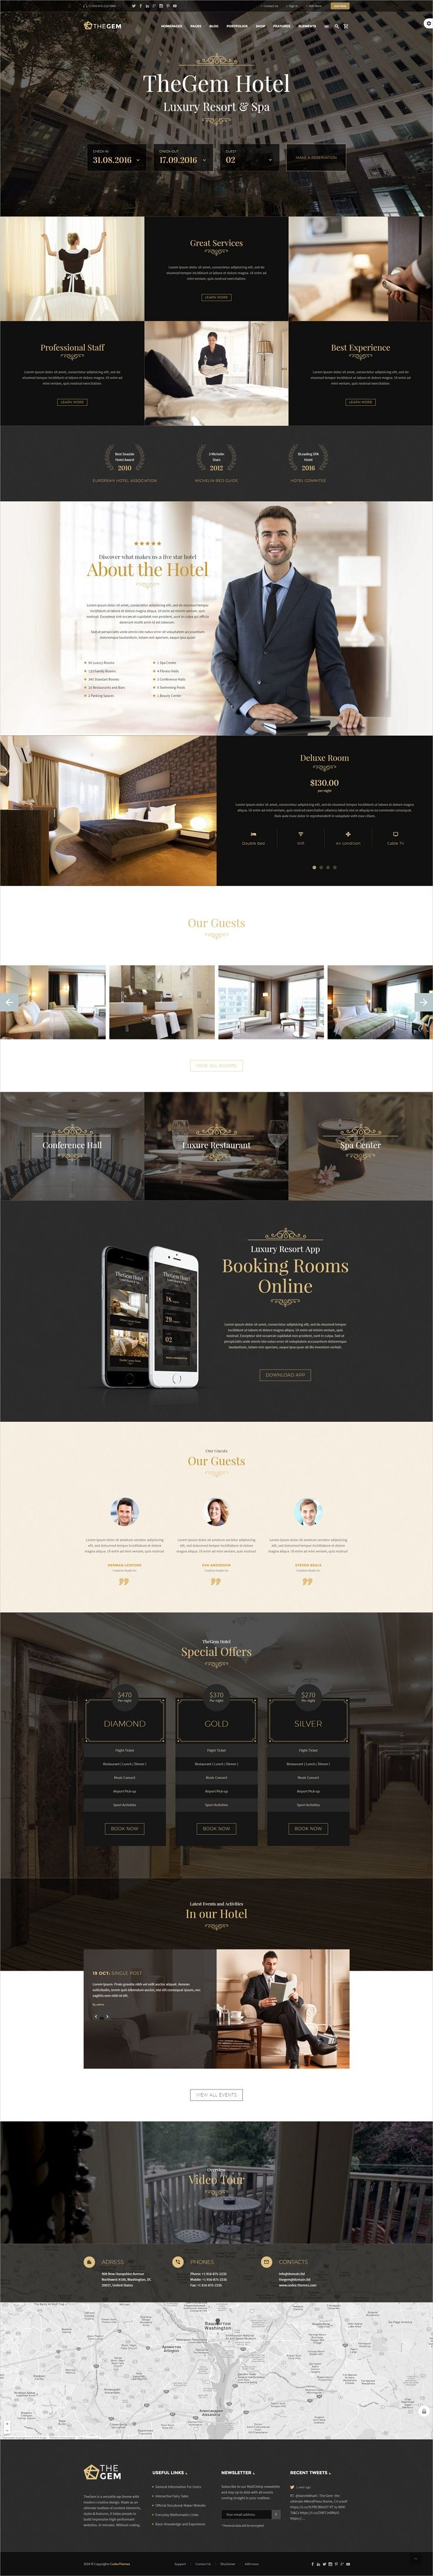 TheGem is creative multipurpose #PSD template for awesome #hotel #hospitality websites and huge variety of design or web projects with 50+ homepage layouts & 200+ layered PSD files download now➩ https://themeforest.net/item/thegem-creative-multipurpose-psd-template/19746346?ref=Datasata